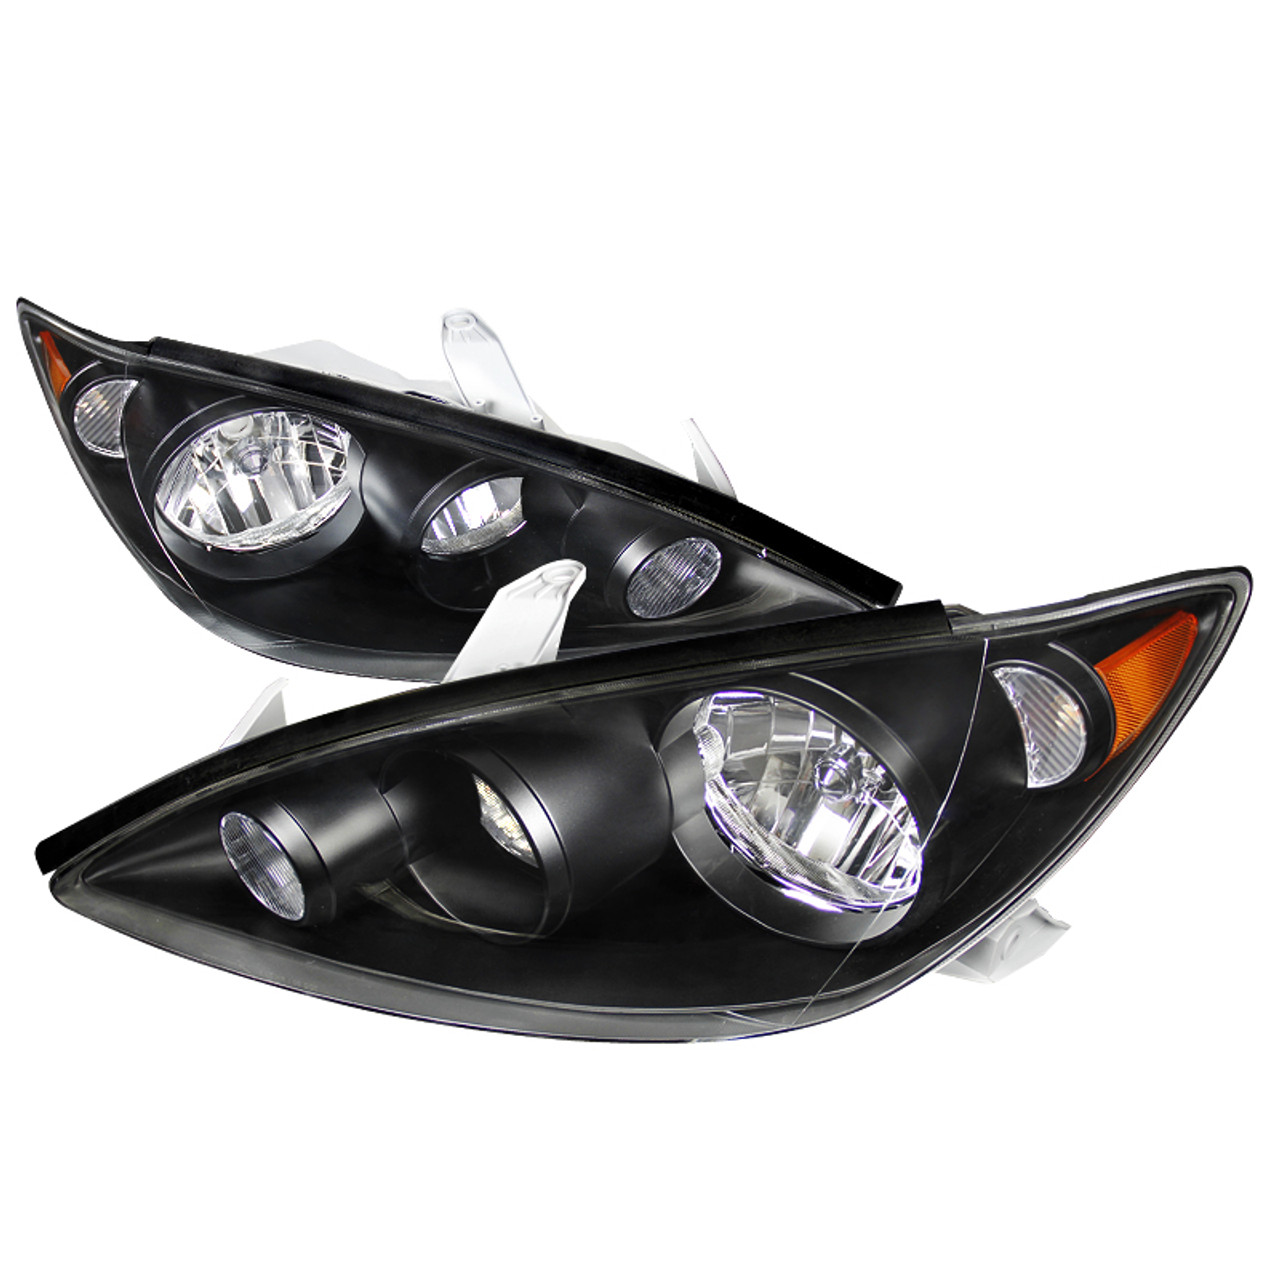 For 2005-2006 Toyota Camry Black Housing Clear Reflector Clear Lens Headlights